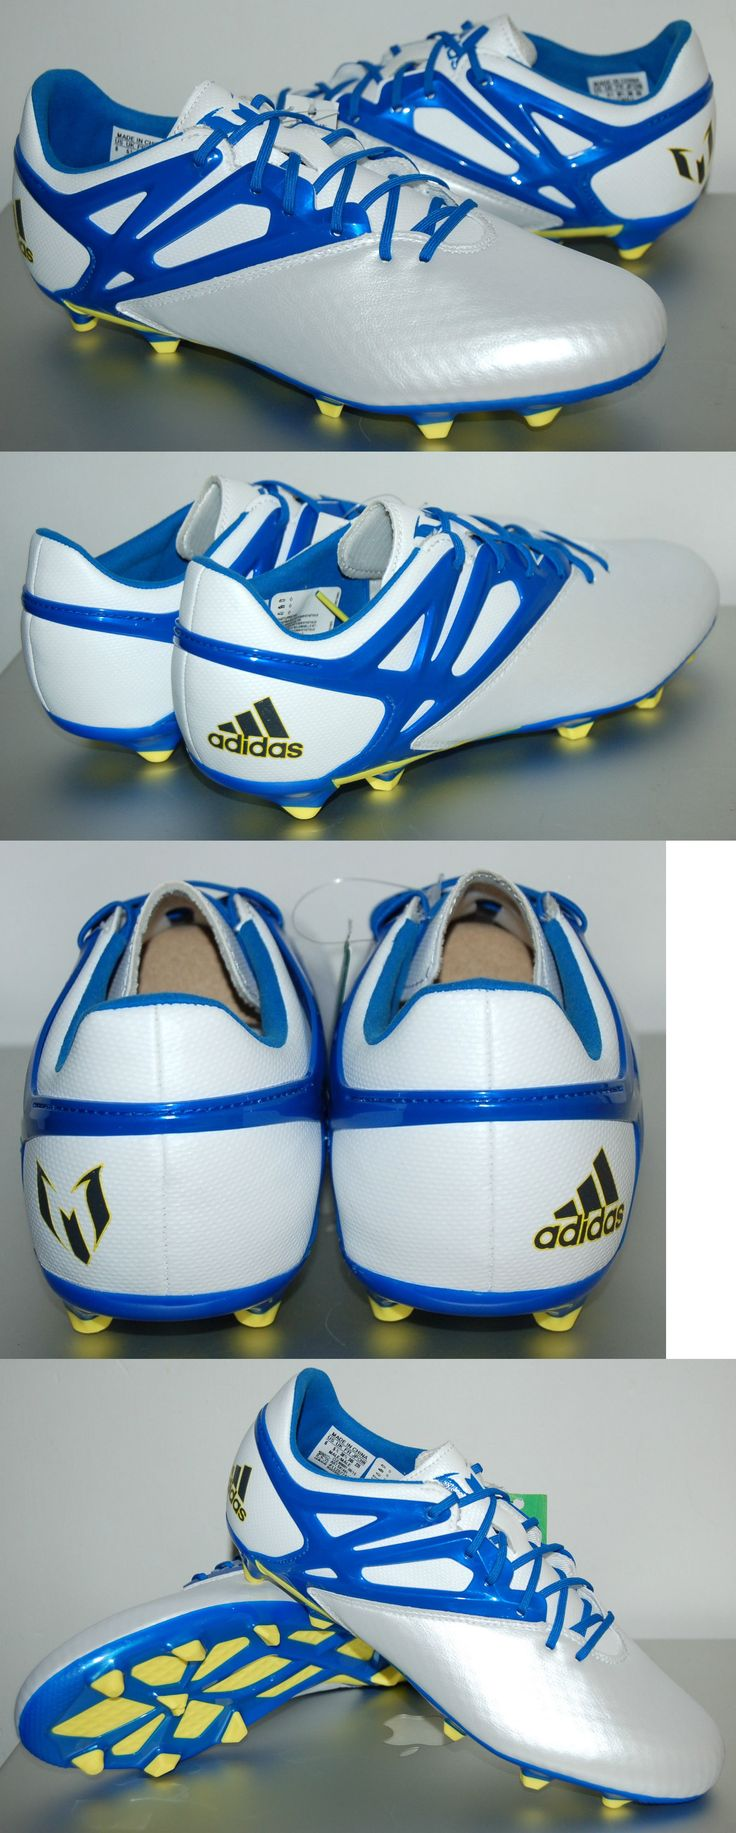 Youth 159177: Adidas Messi 15.1 Firm/Artific Soccer Shoes, S81491, White/Blue, Us Youth Sizes -> BUY IT NOW ONLY: $55.0 on eBay!